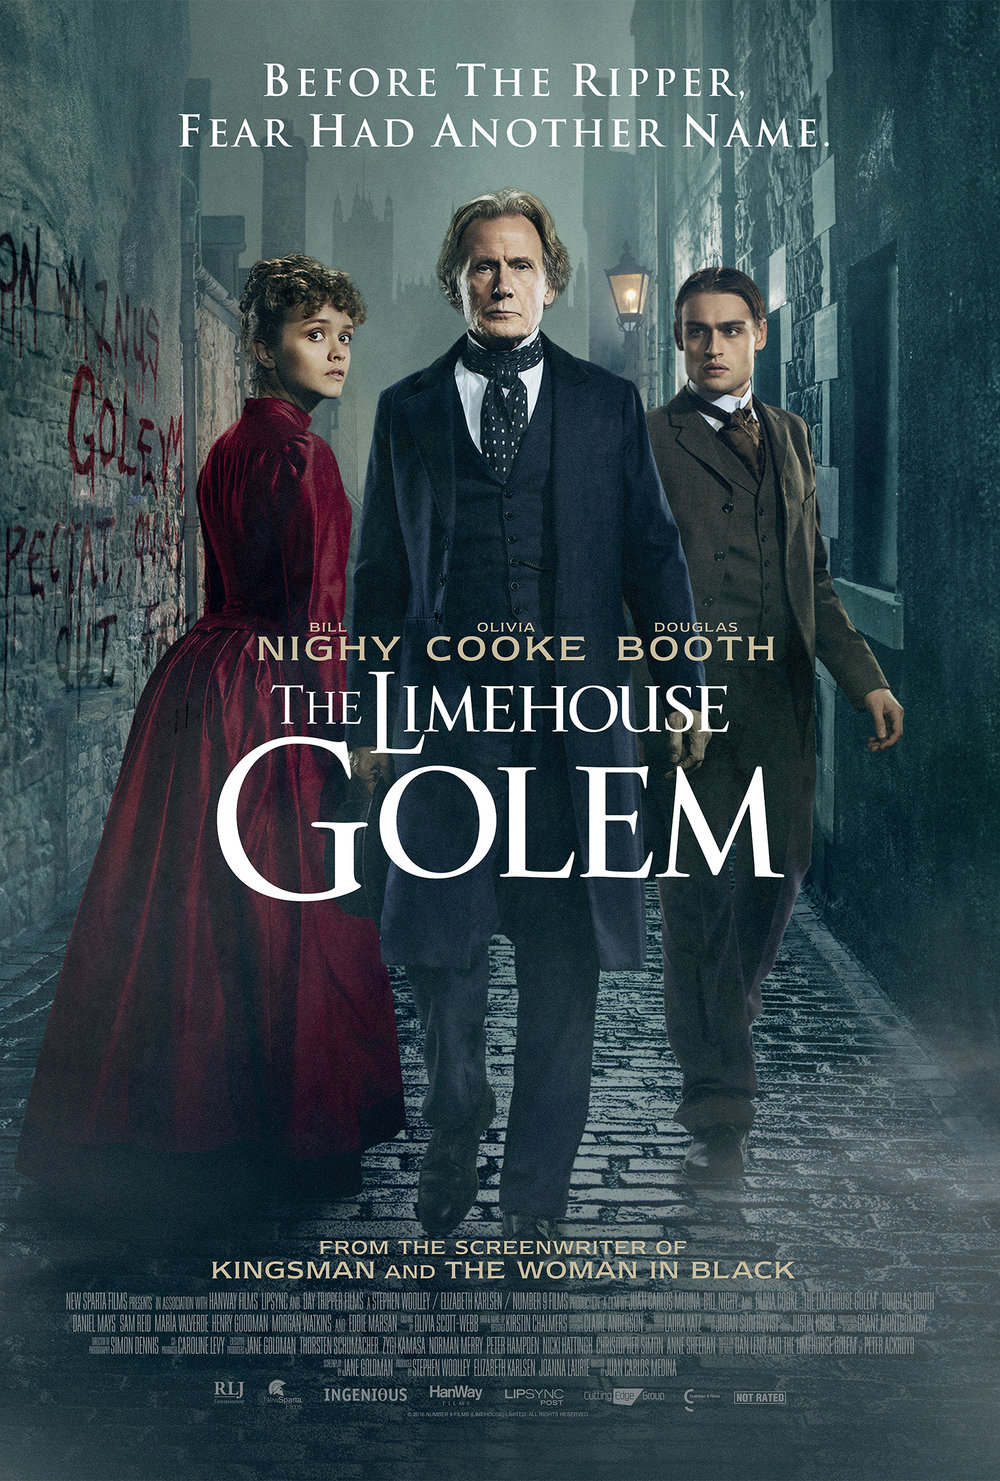 The Limehouse Golem (2016) - Directed by: Juan Carlos MedinaStarring: Olivia Cooke, Bill Nighy, Douglas BoothRated: NR (Suggested R for Grisly Violence and Some Sexual Material)Running Time: 1 h 49 mTMM Score: 3.5 stars out of 5STRENGTHS: Mise-en-scene, Acting, WritingWEAKNESSES: Pacing